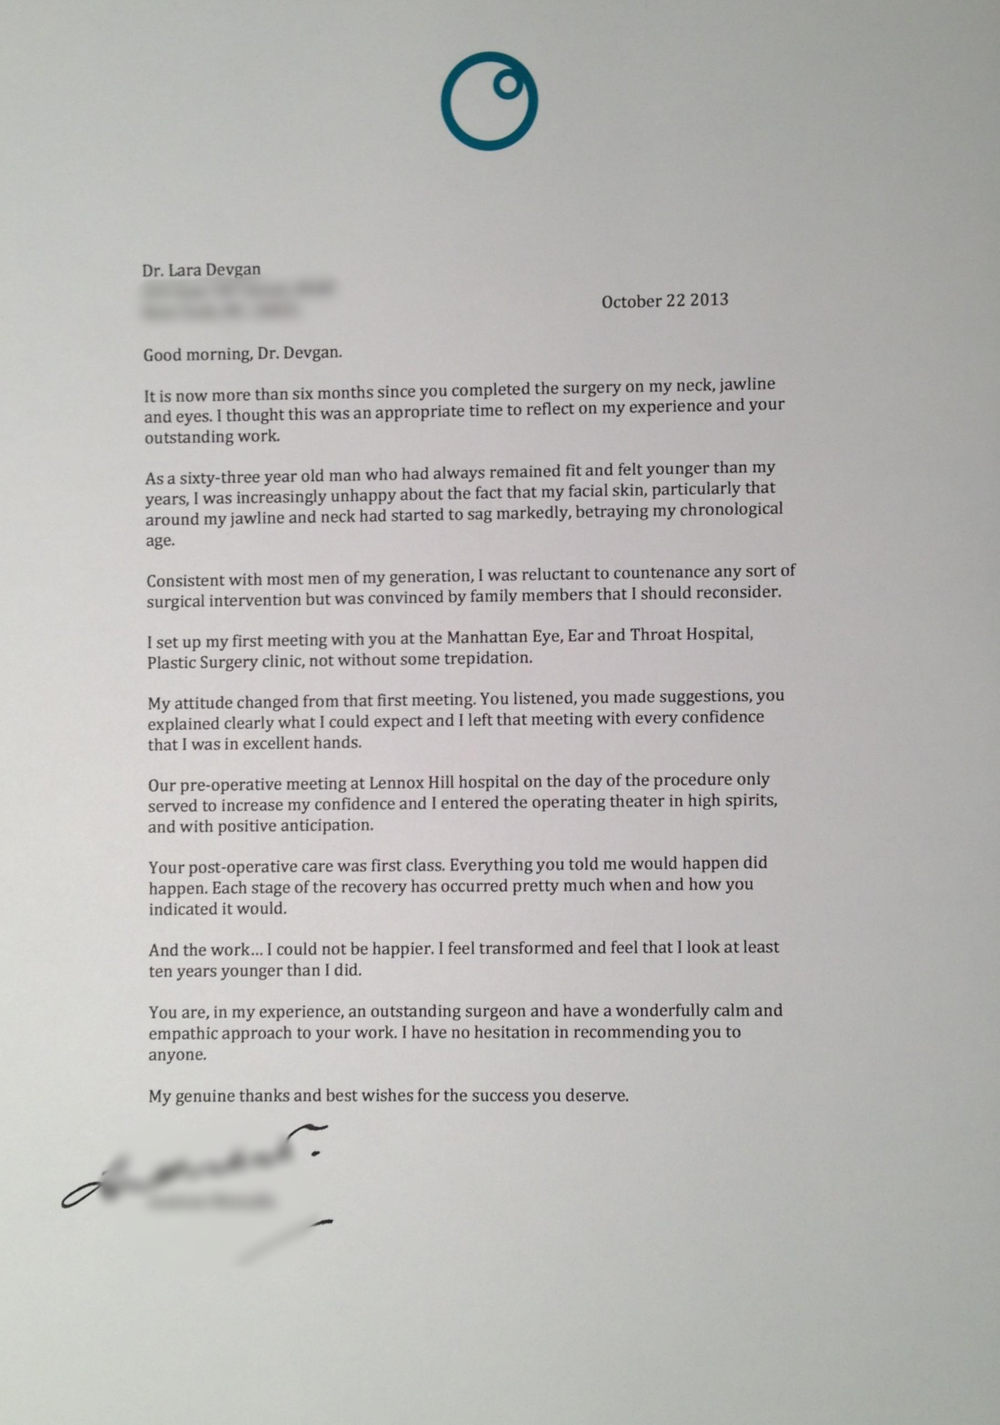 Letter from an upper and lower eye lift (blepharoplasty), necklift/ facelift patient.